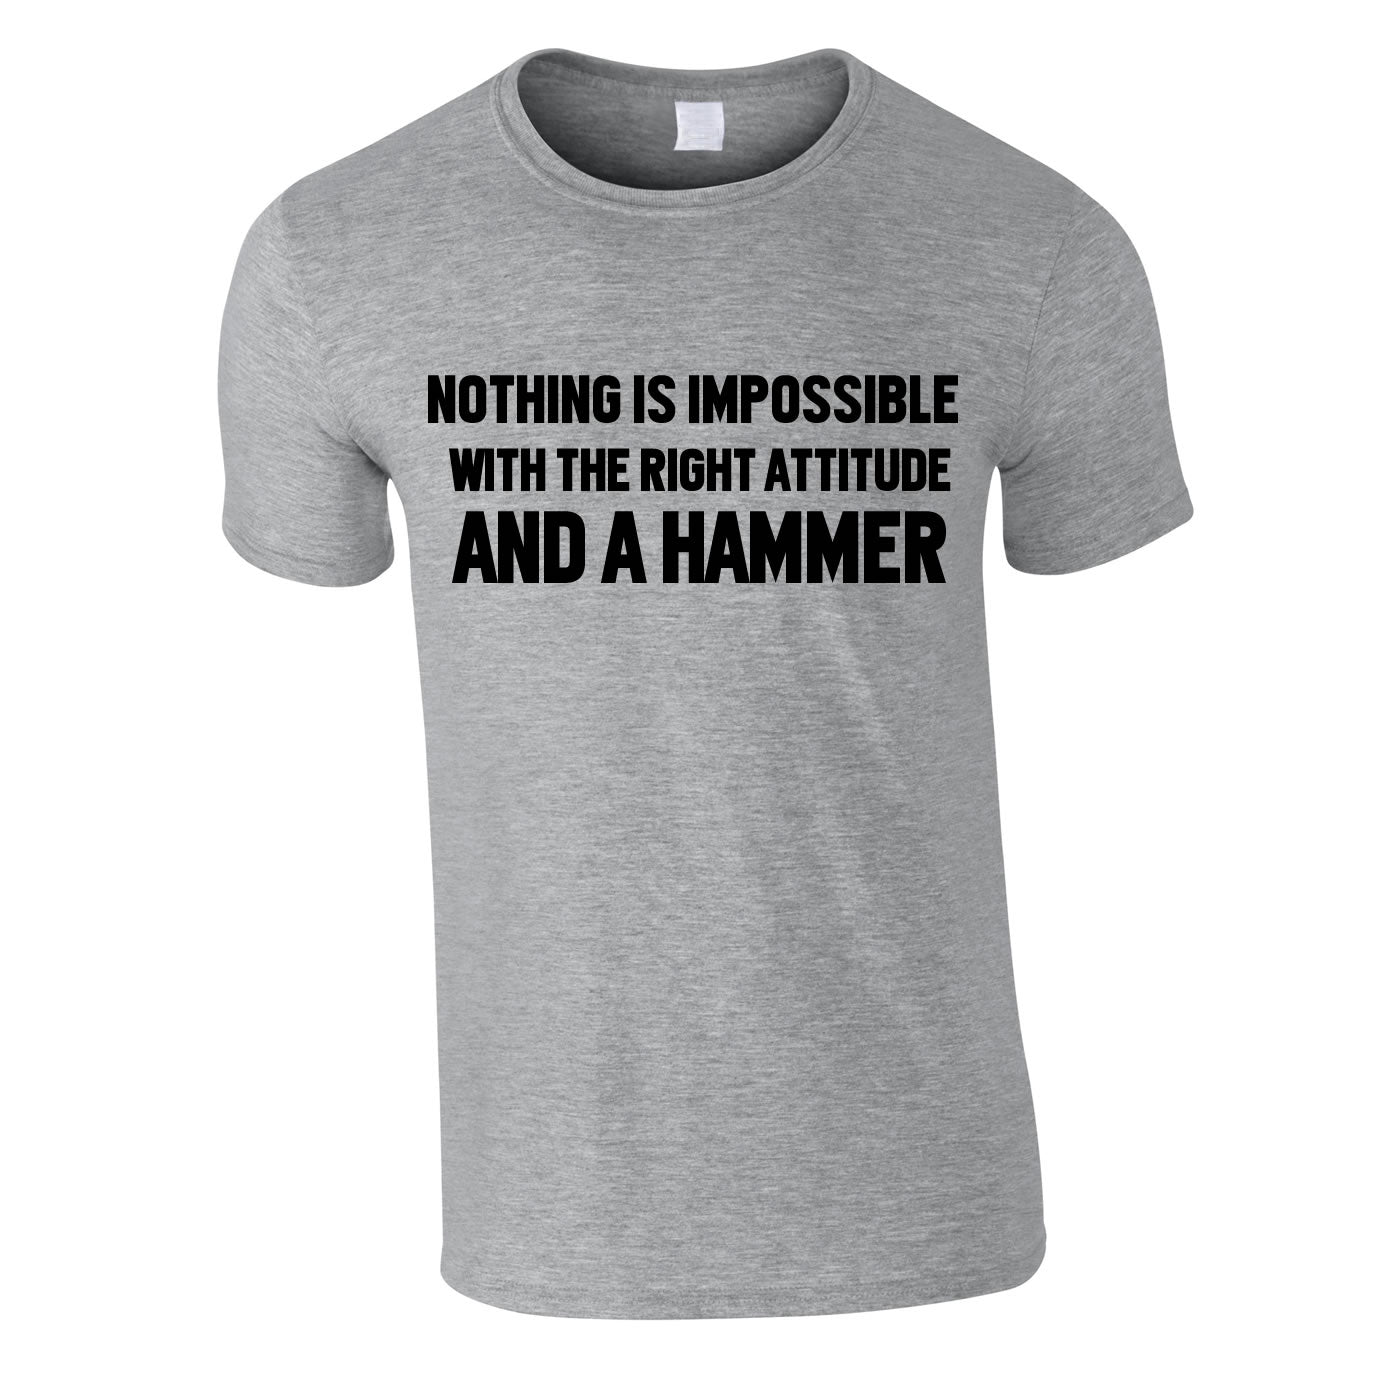 Nothing is impossible with the right attitude and a hammer T-shirt